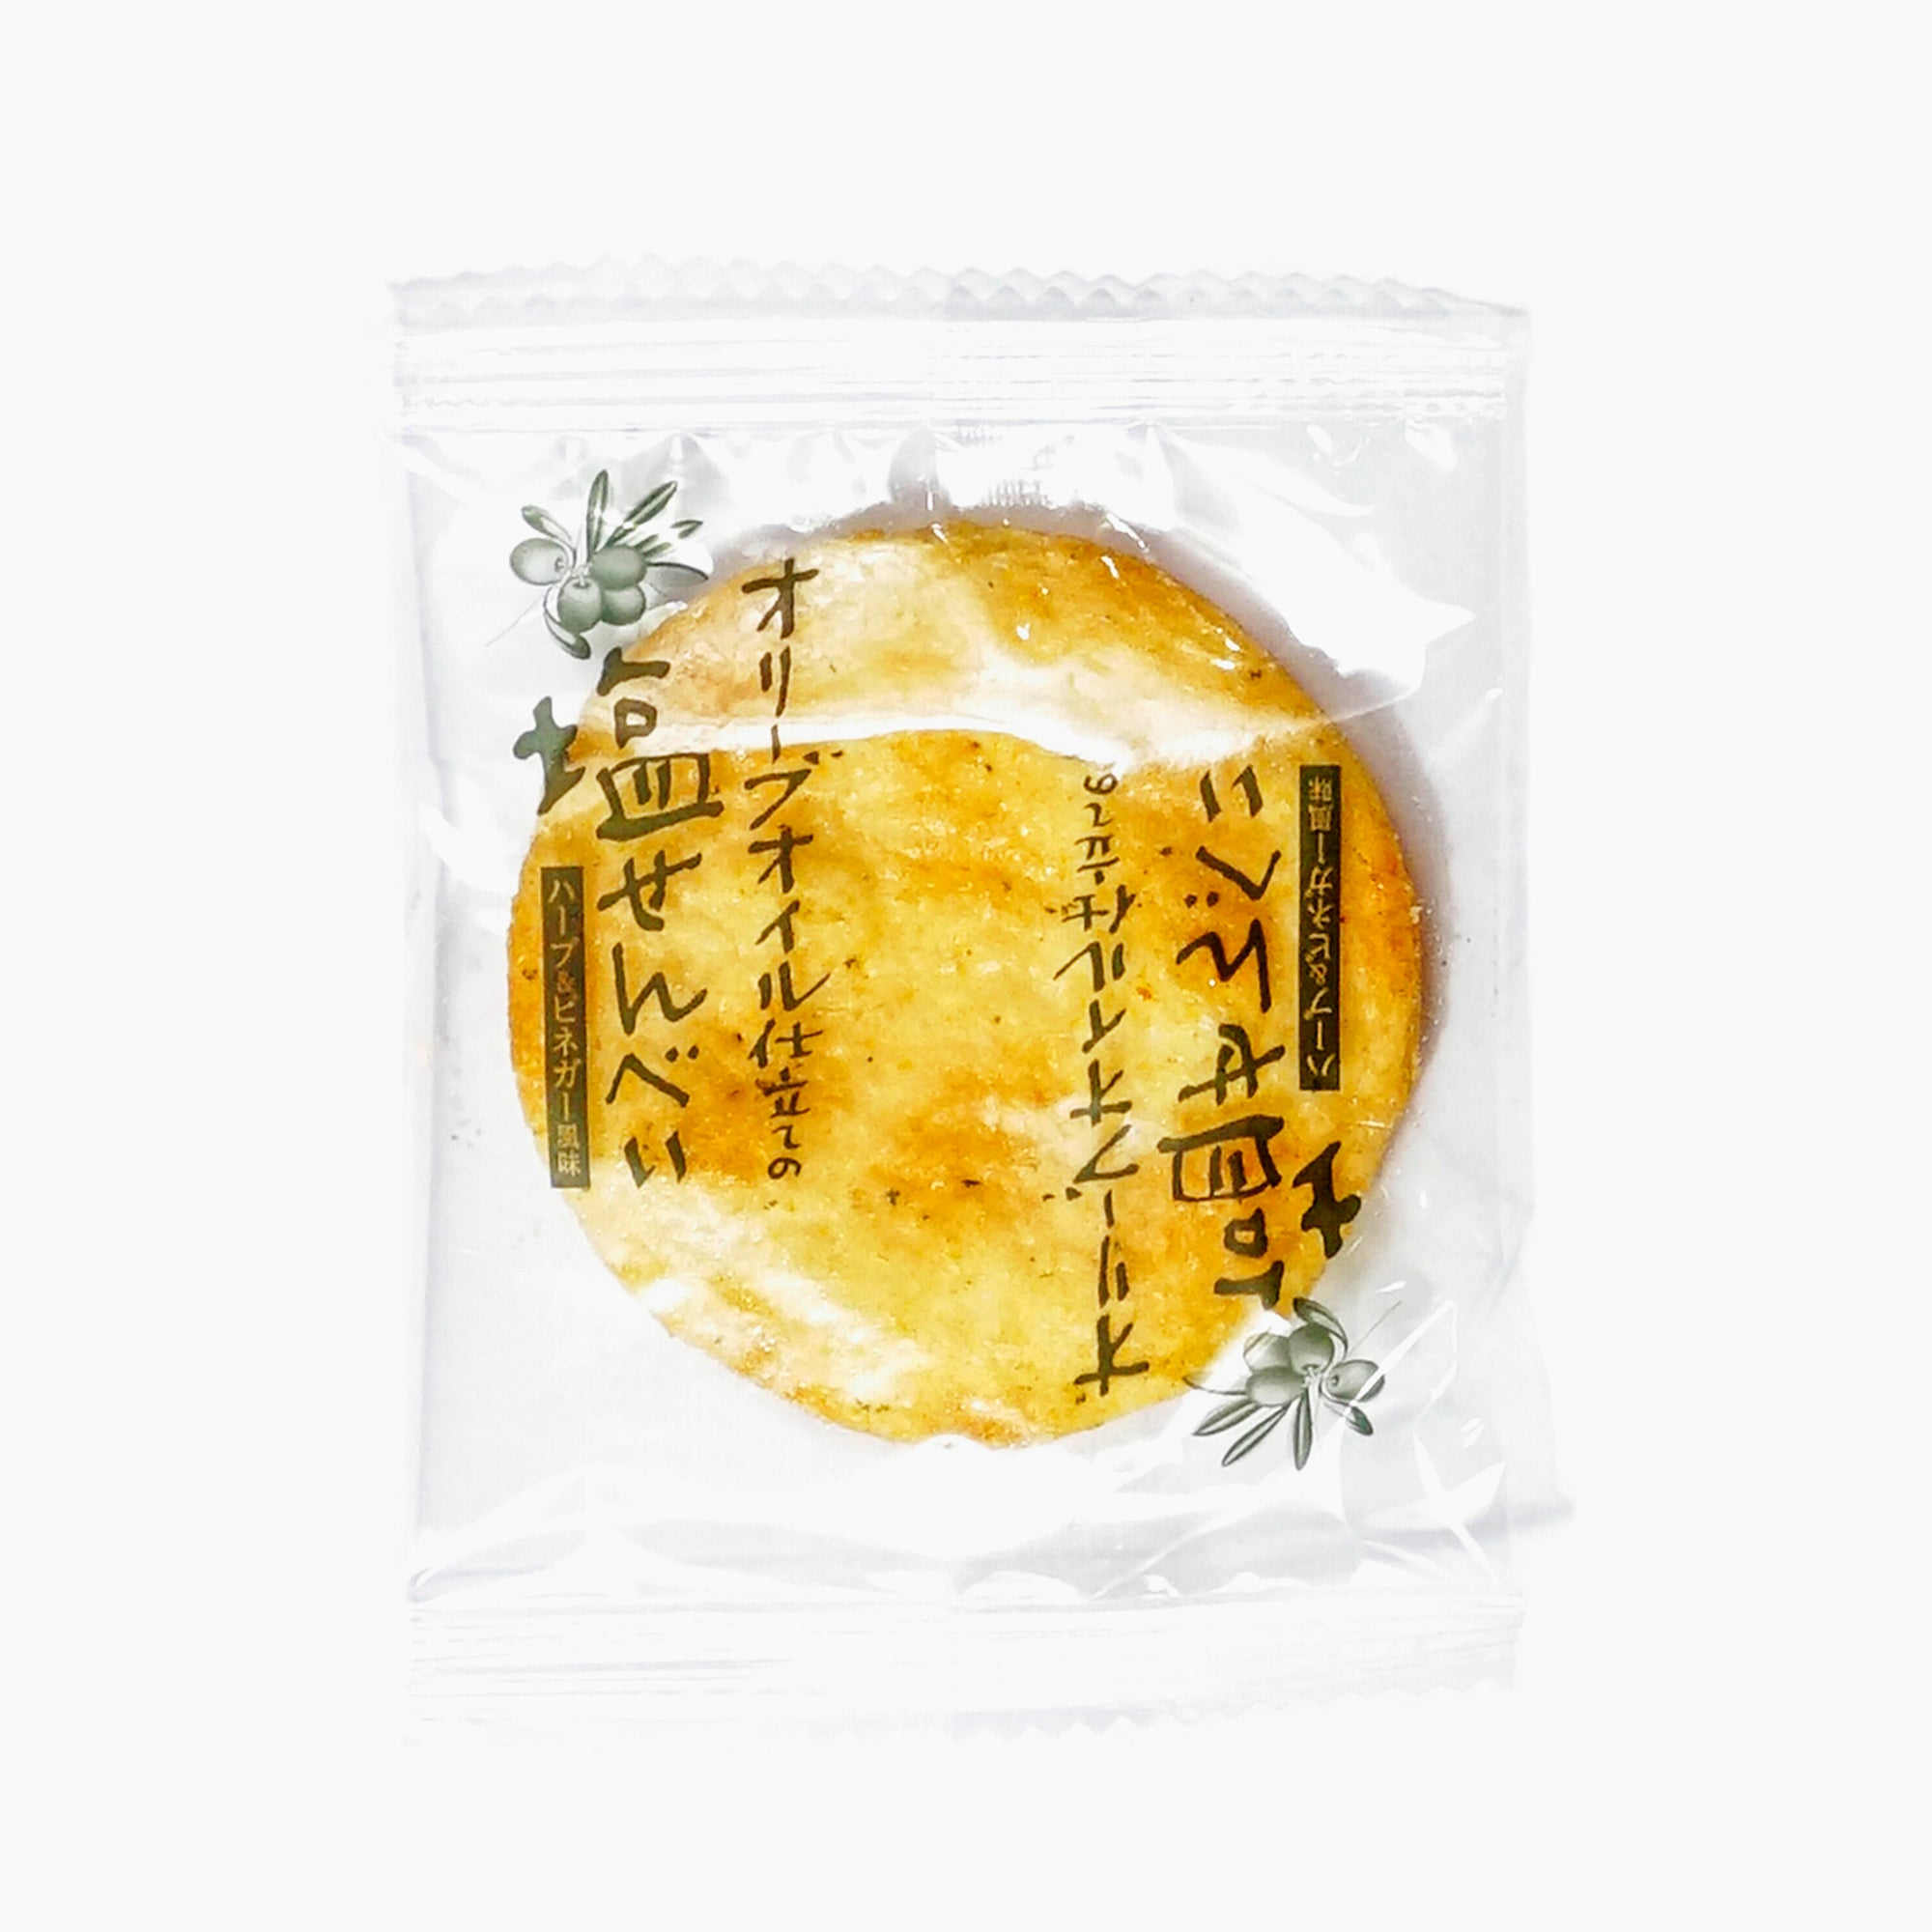 Olive Oil Senbei: Salt Herb and Vinegar Flavor (15 Pieces)